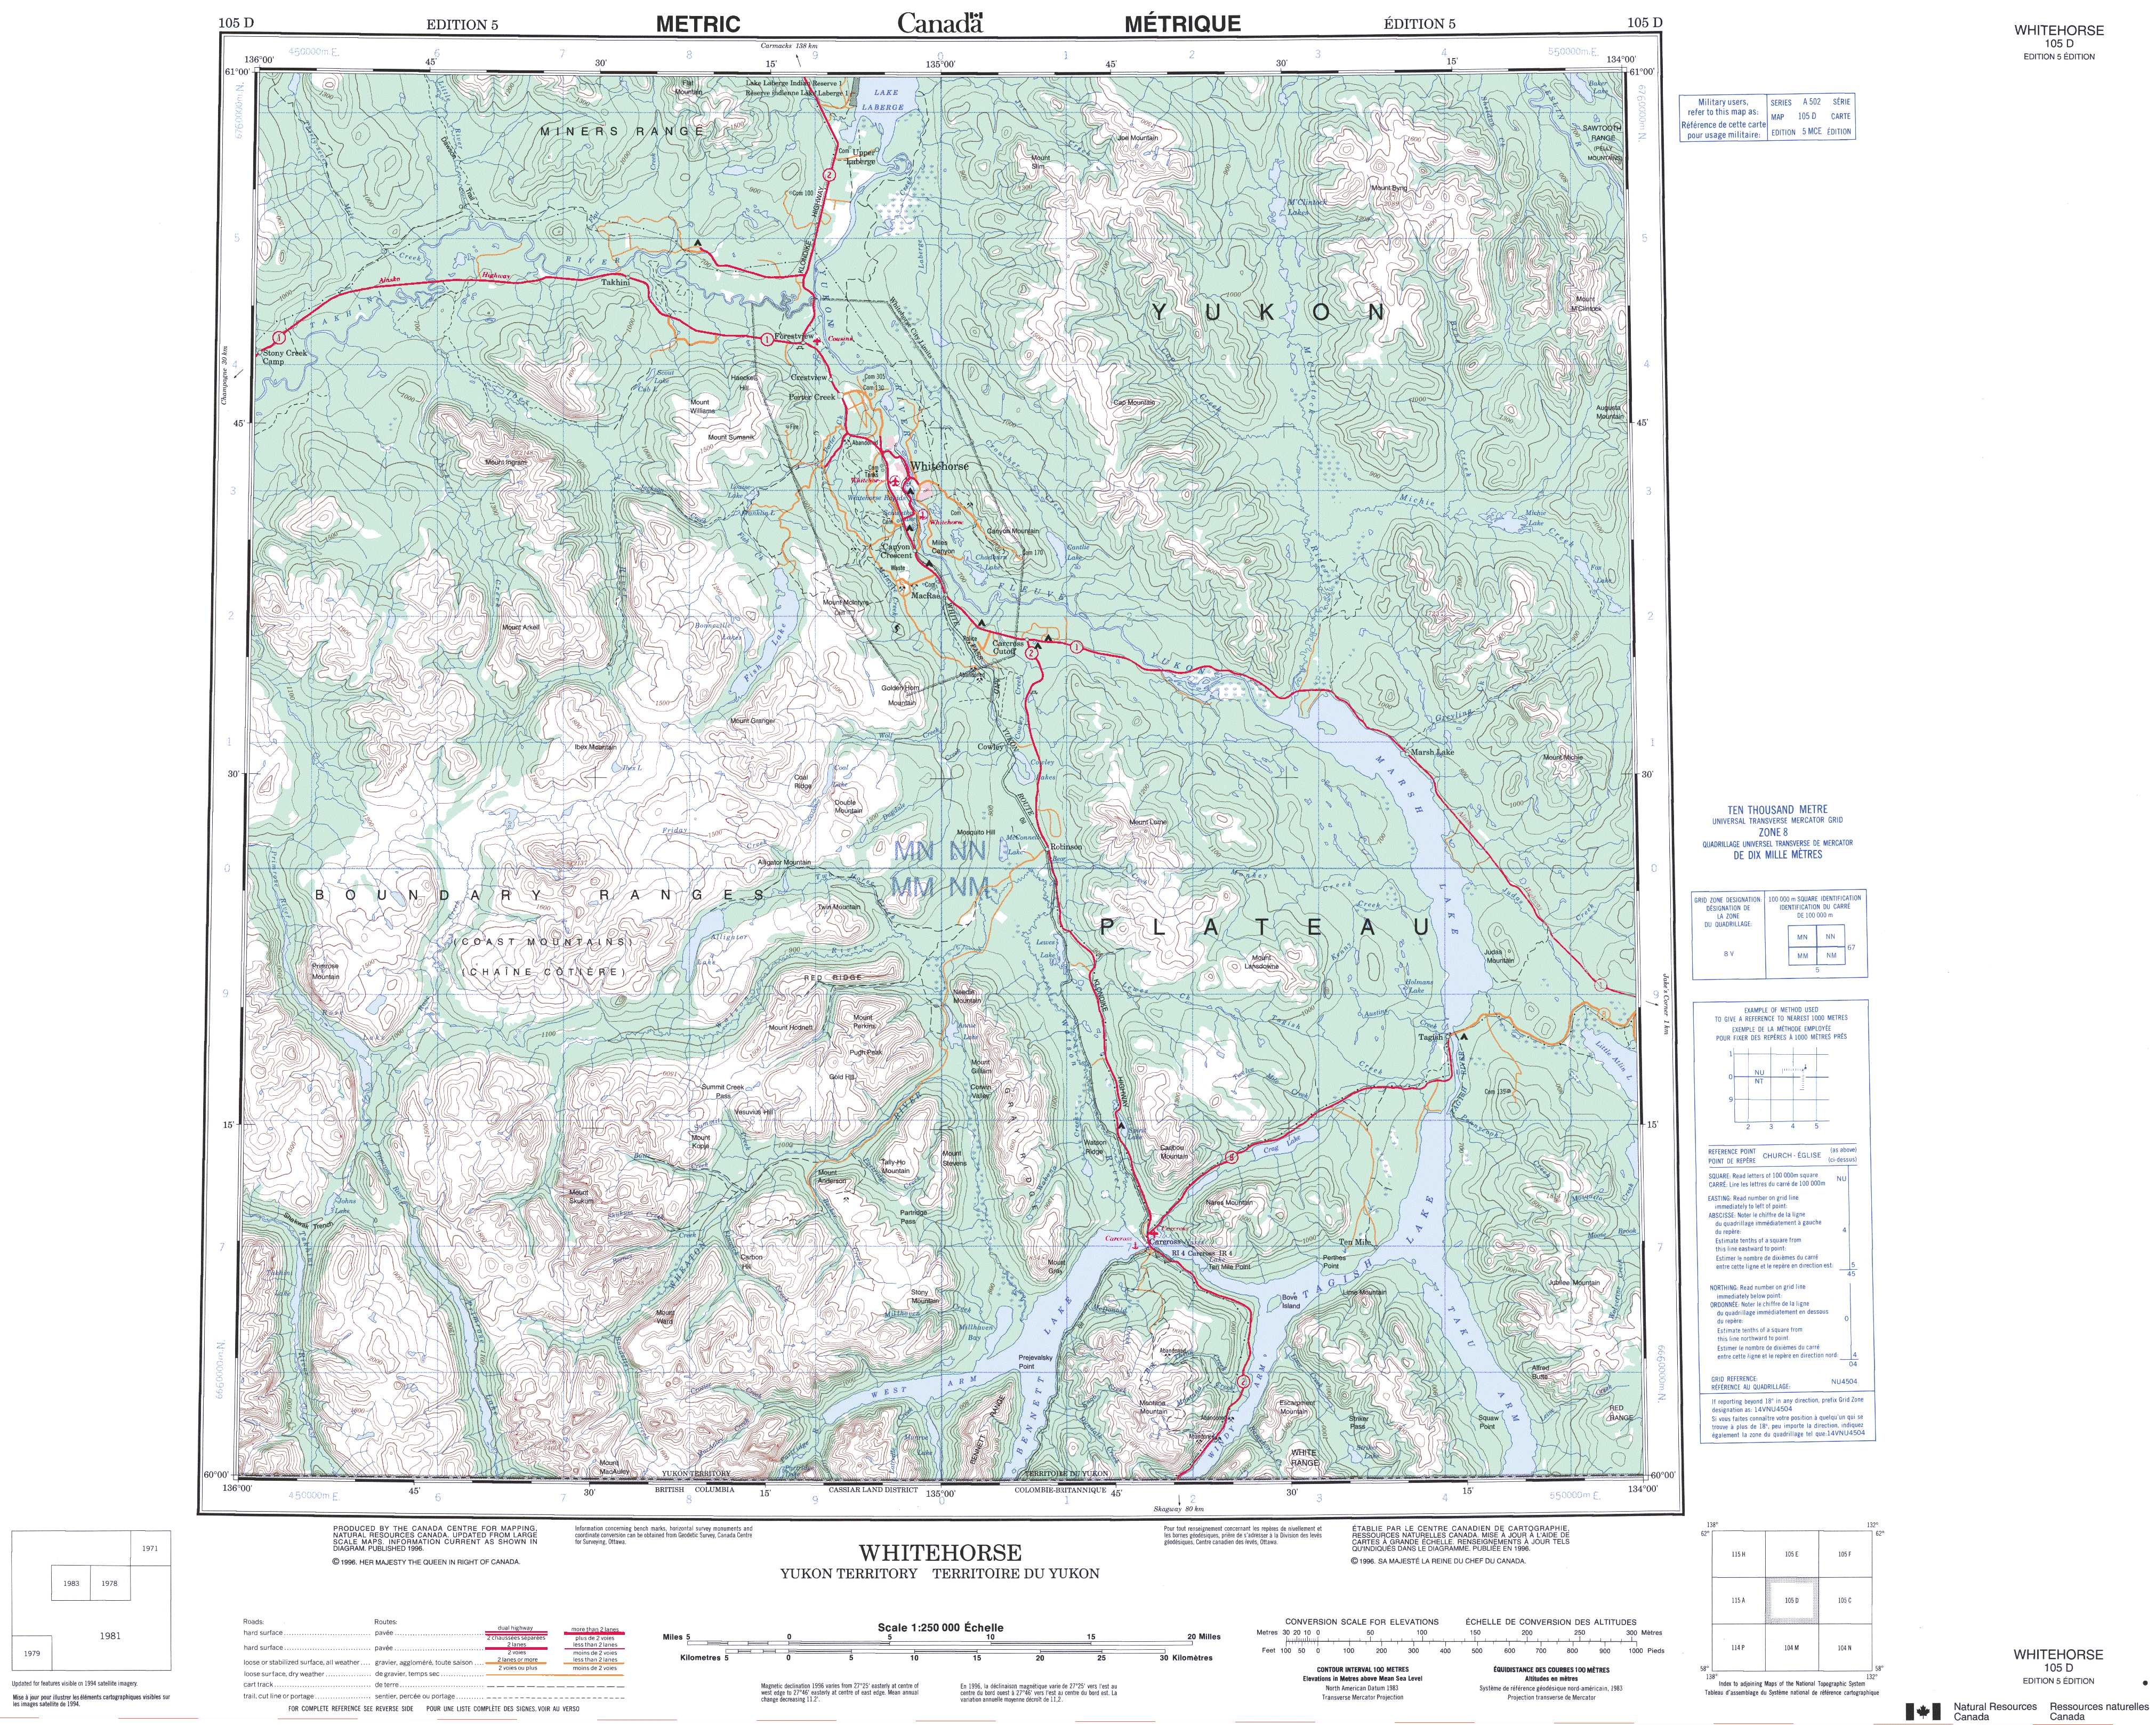 Printable Topographic Map Of Whitehorse 105D, Yk - Free Printable Topo Maps